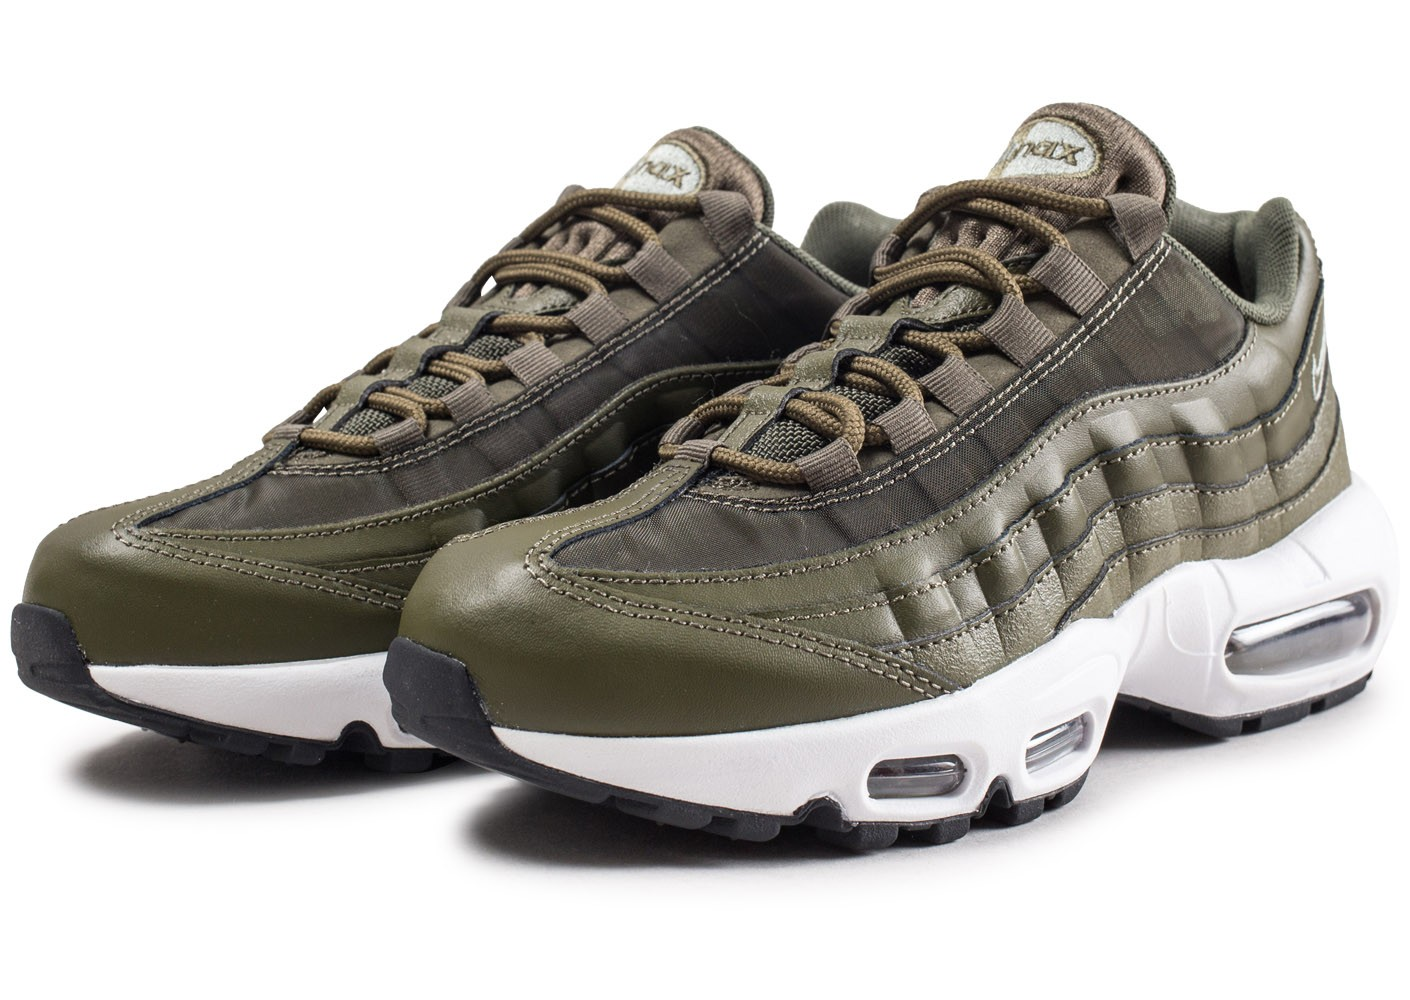 sports shoes f0a80 03670 ... Chaussures Nike Air Max 95 OG Olive femme vue intérieure ...